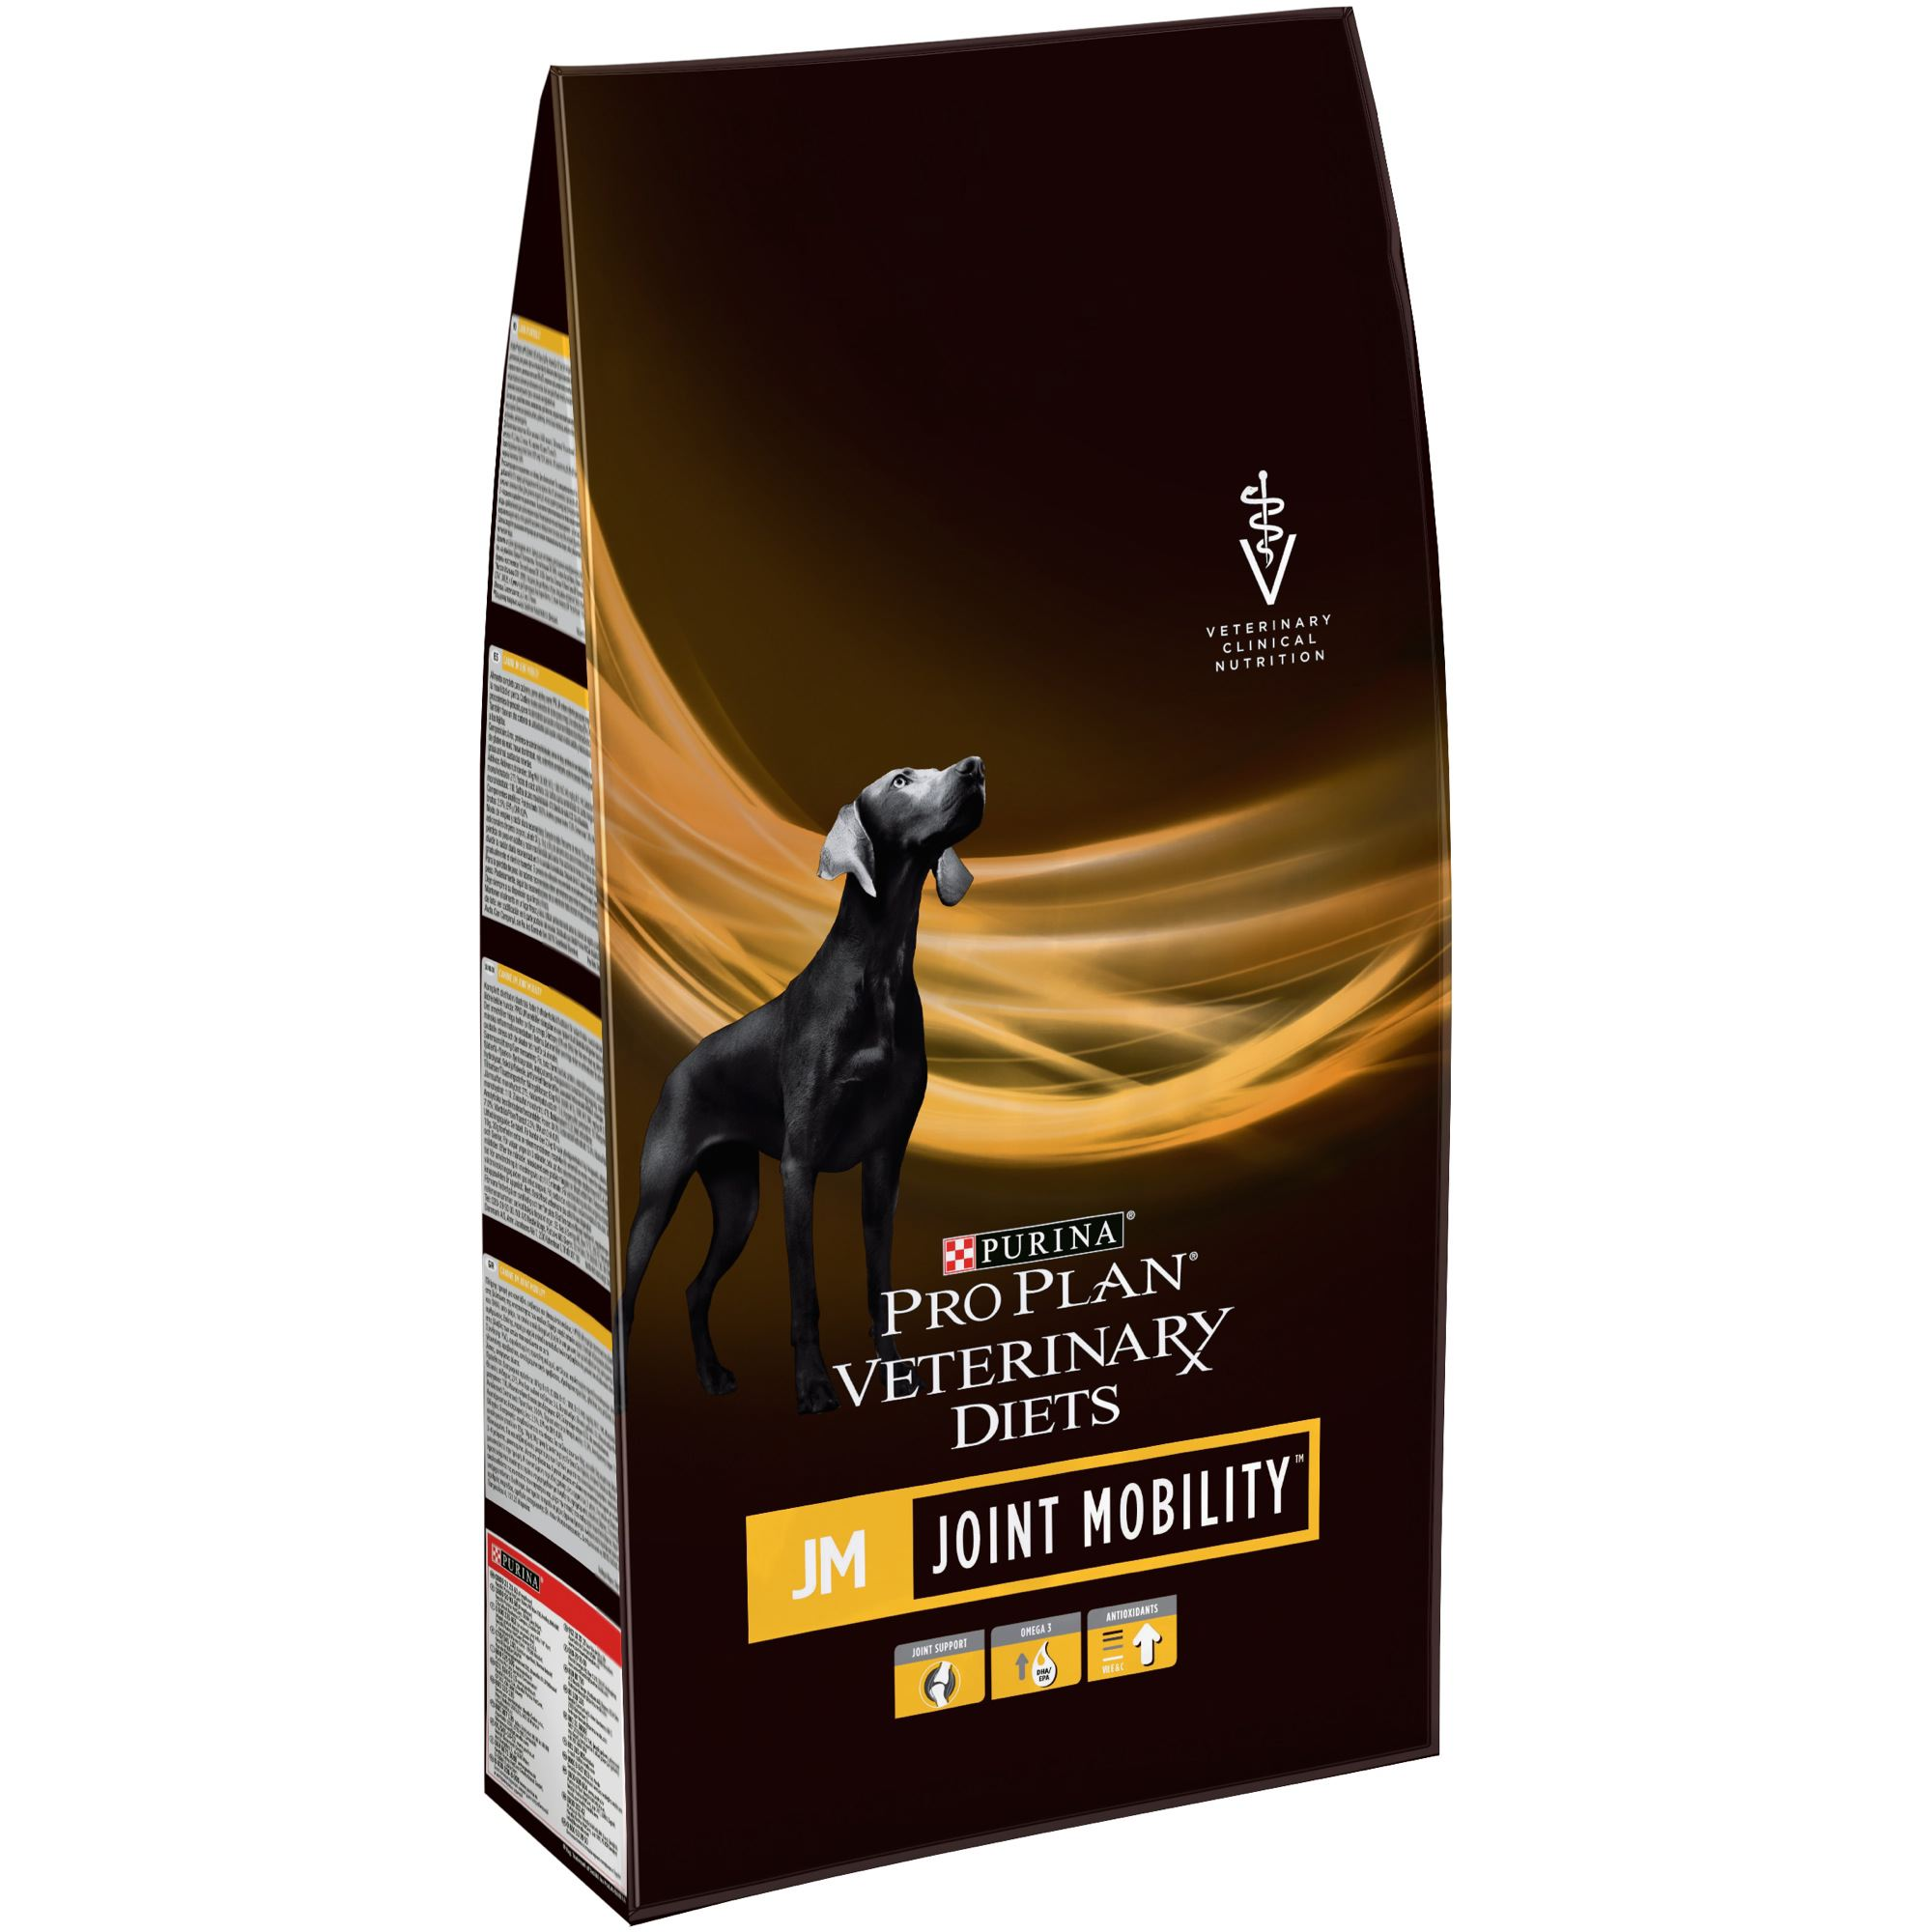 Set of dry food Pro Plan Veterinary diets JM dog food for diseases of the joints, 2 packs of 3 kg